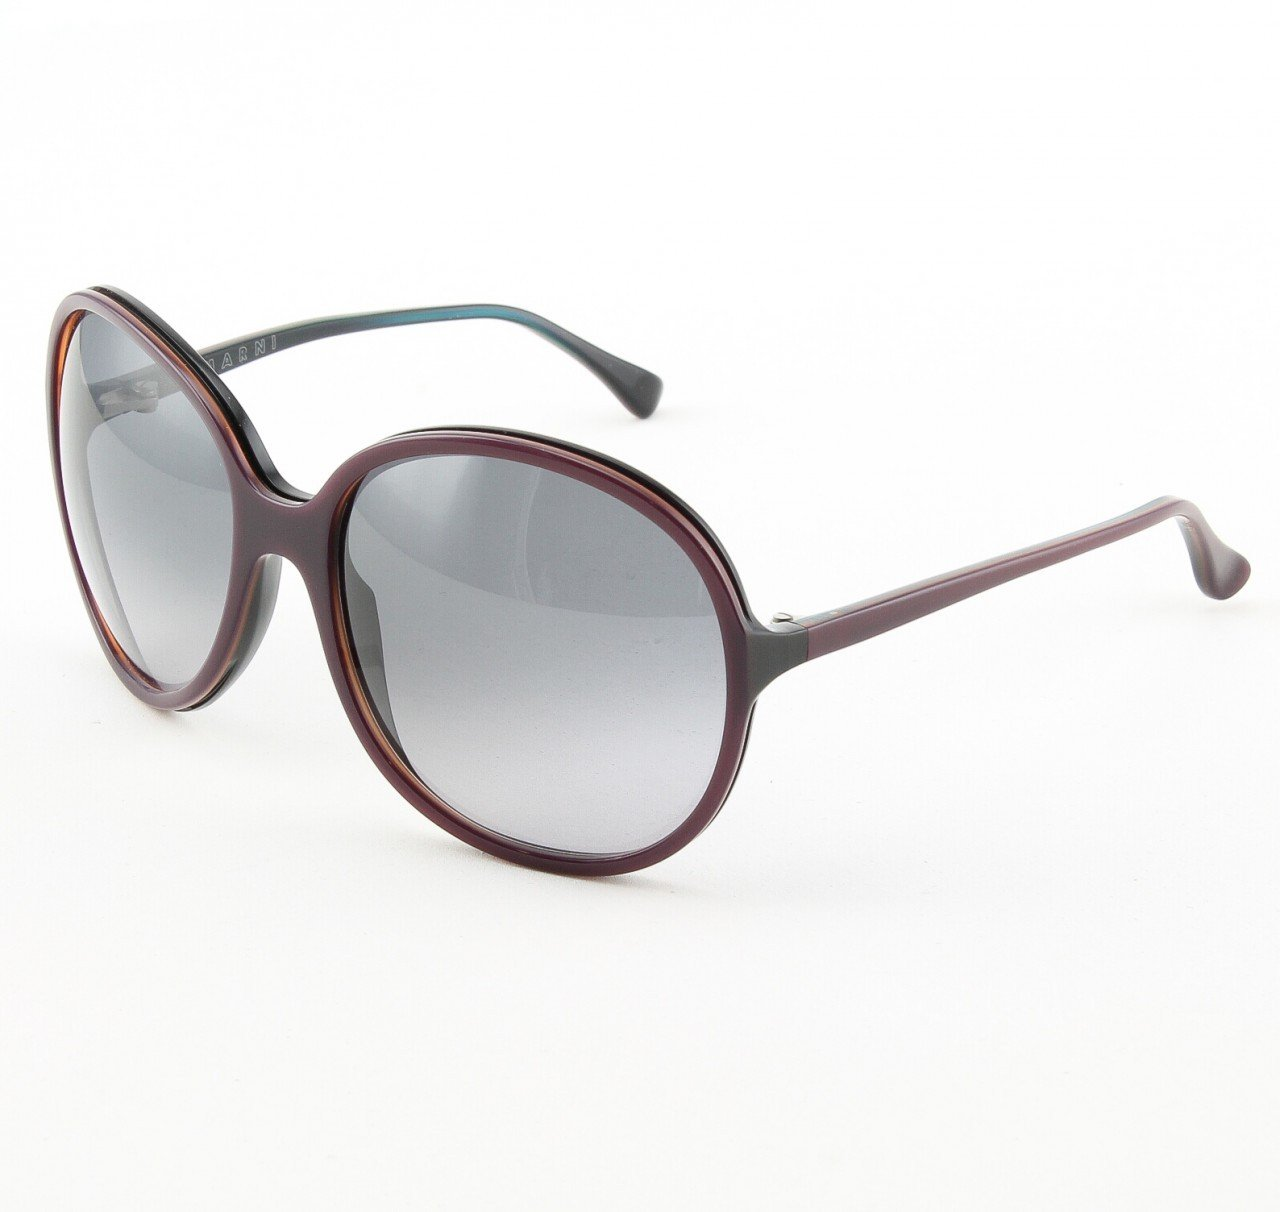 Marni MA165S Sunglasses Col. 03 Oversized Deep Violet Frame with Gray Gradient Lenses